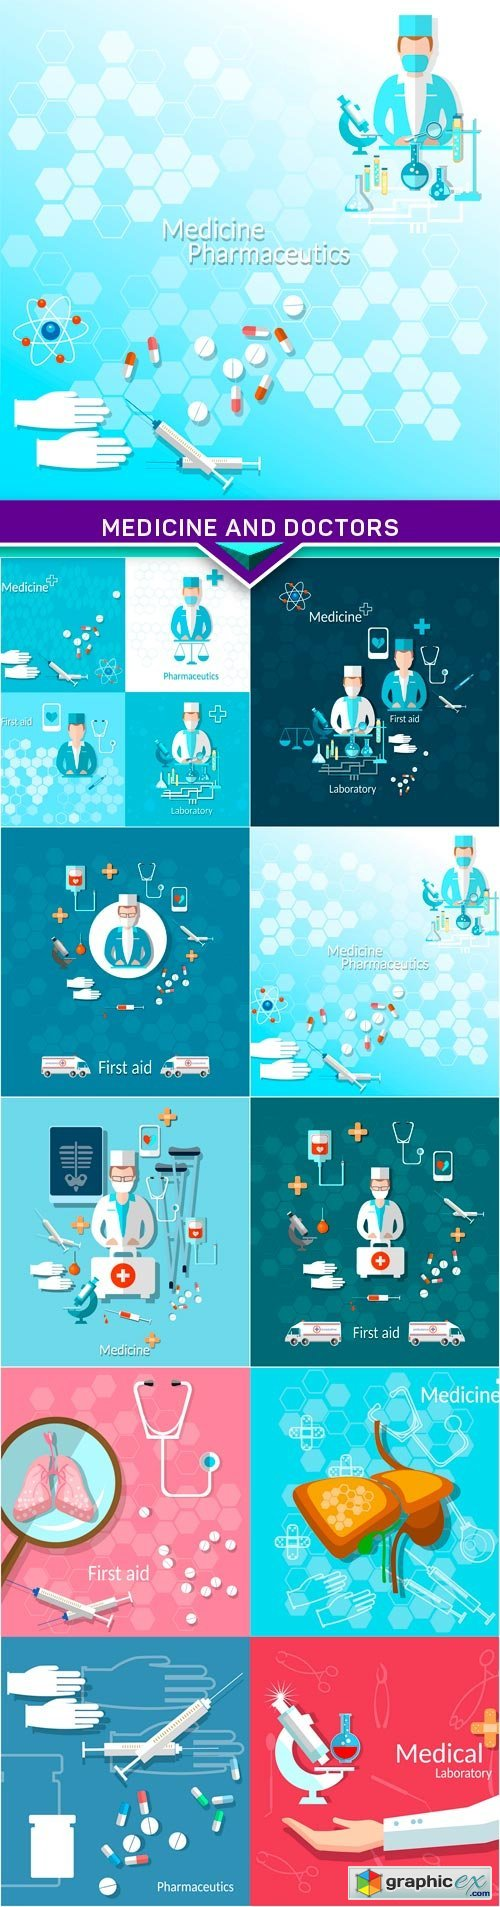 Medicine and doctors vector illustration 7X EPS